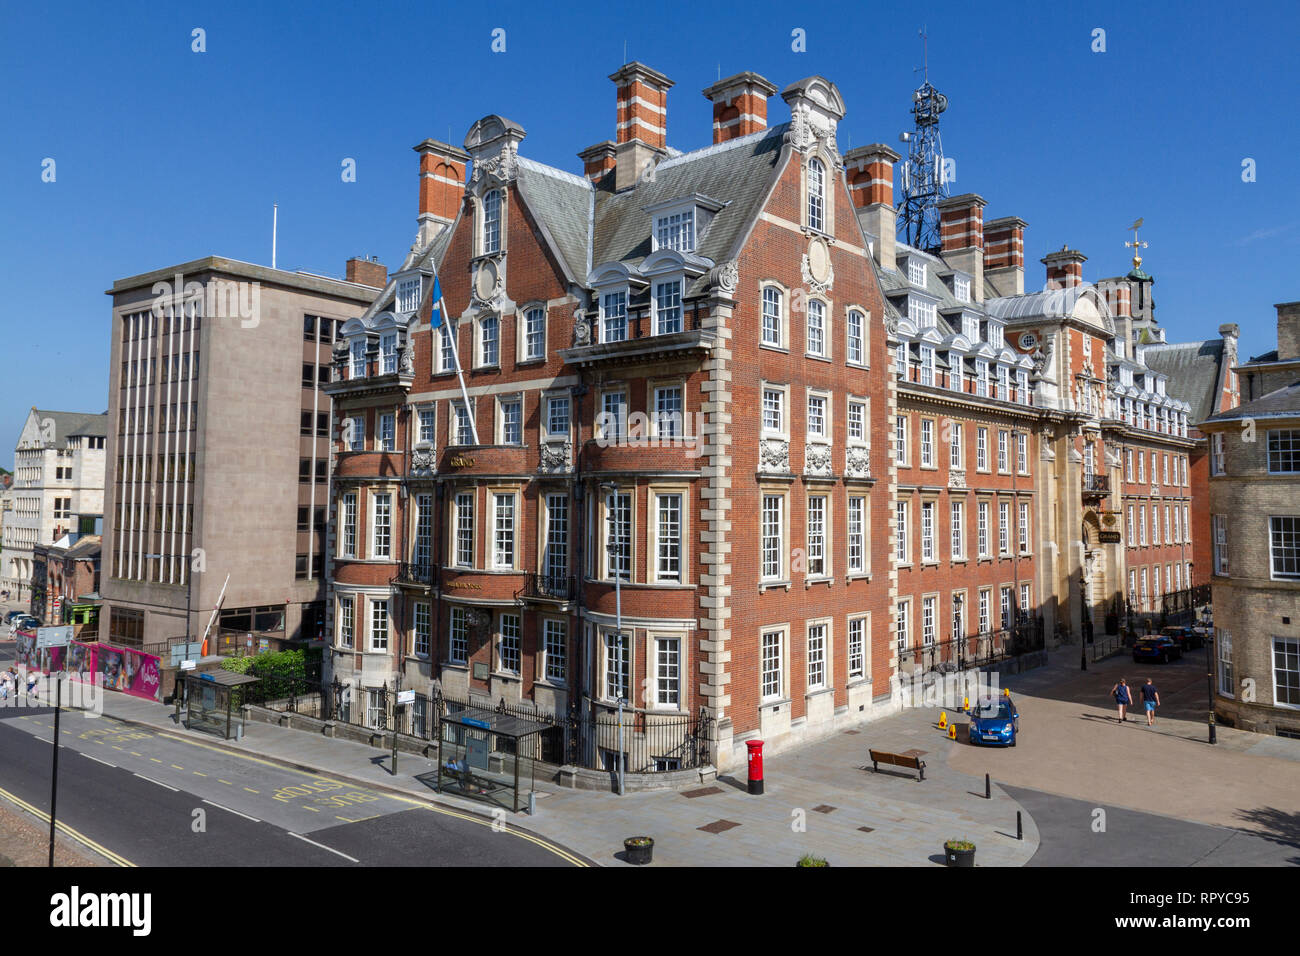 The Grand luxury hotel in the City of York, UK. - Stock Image